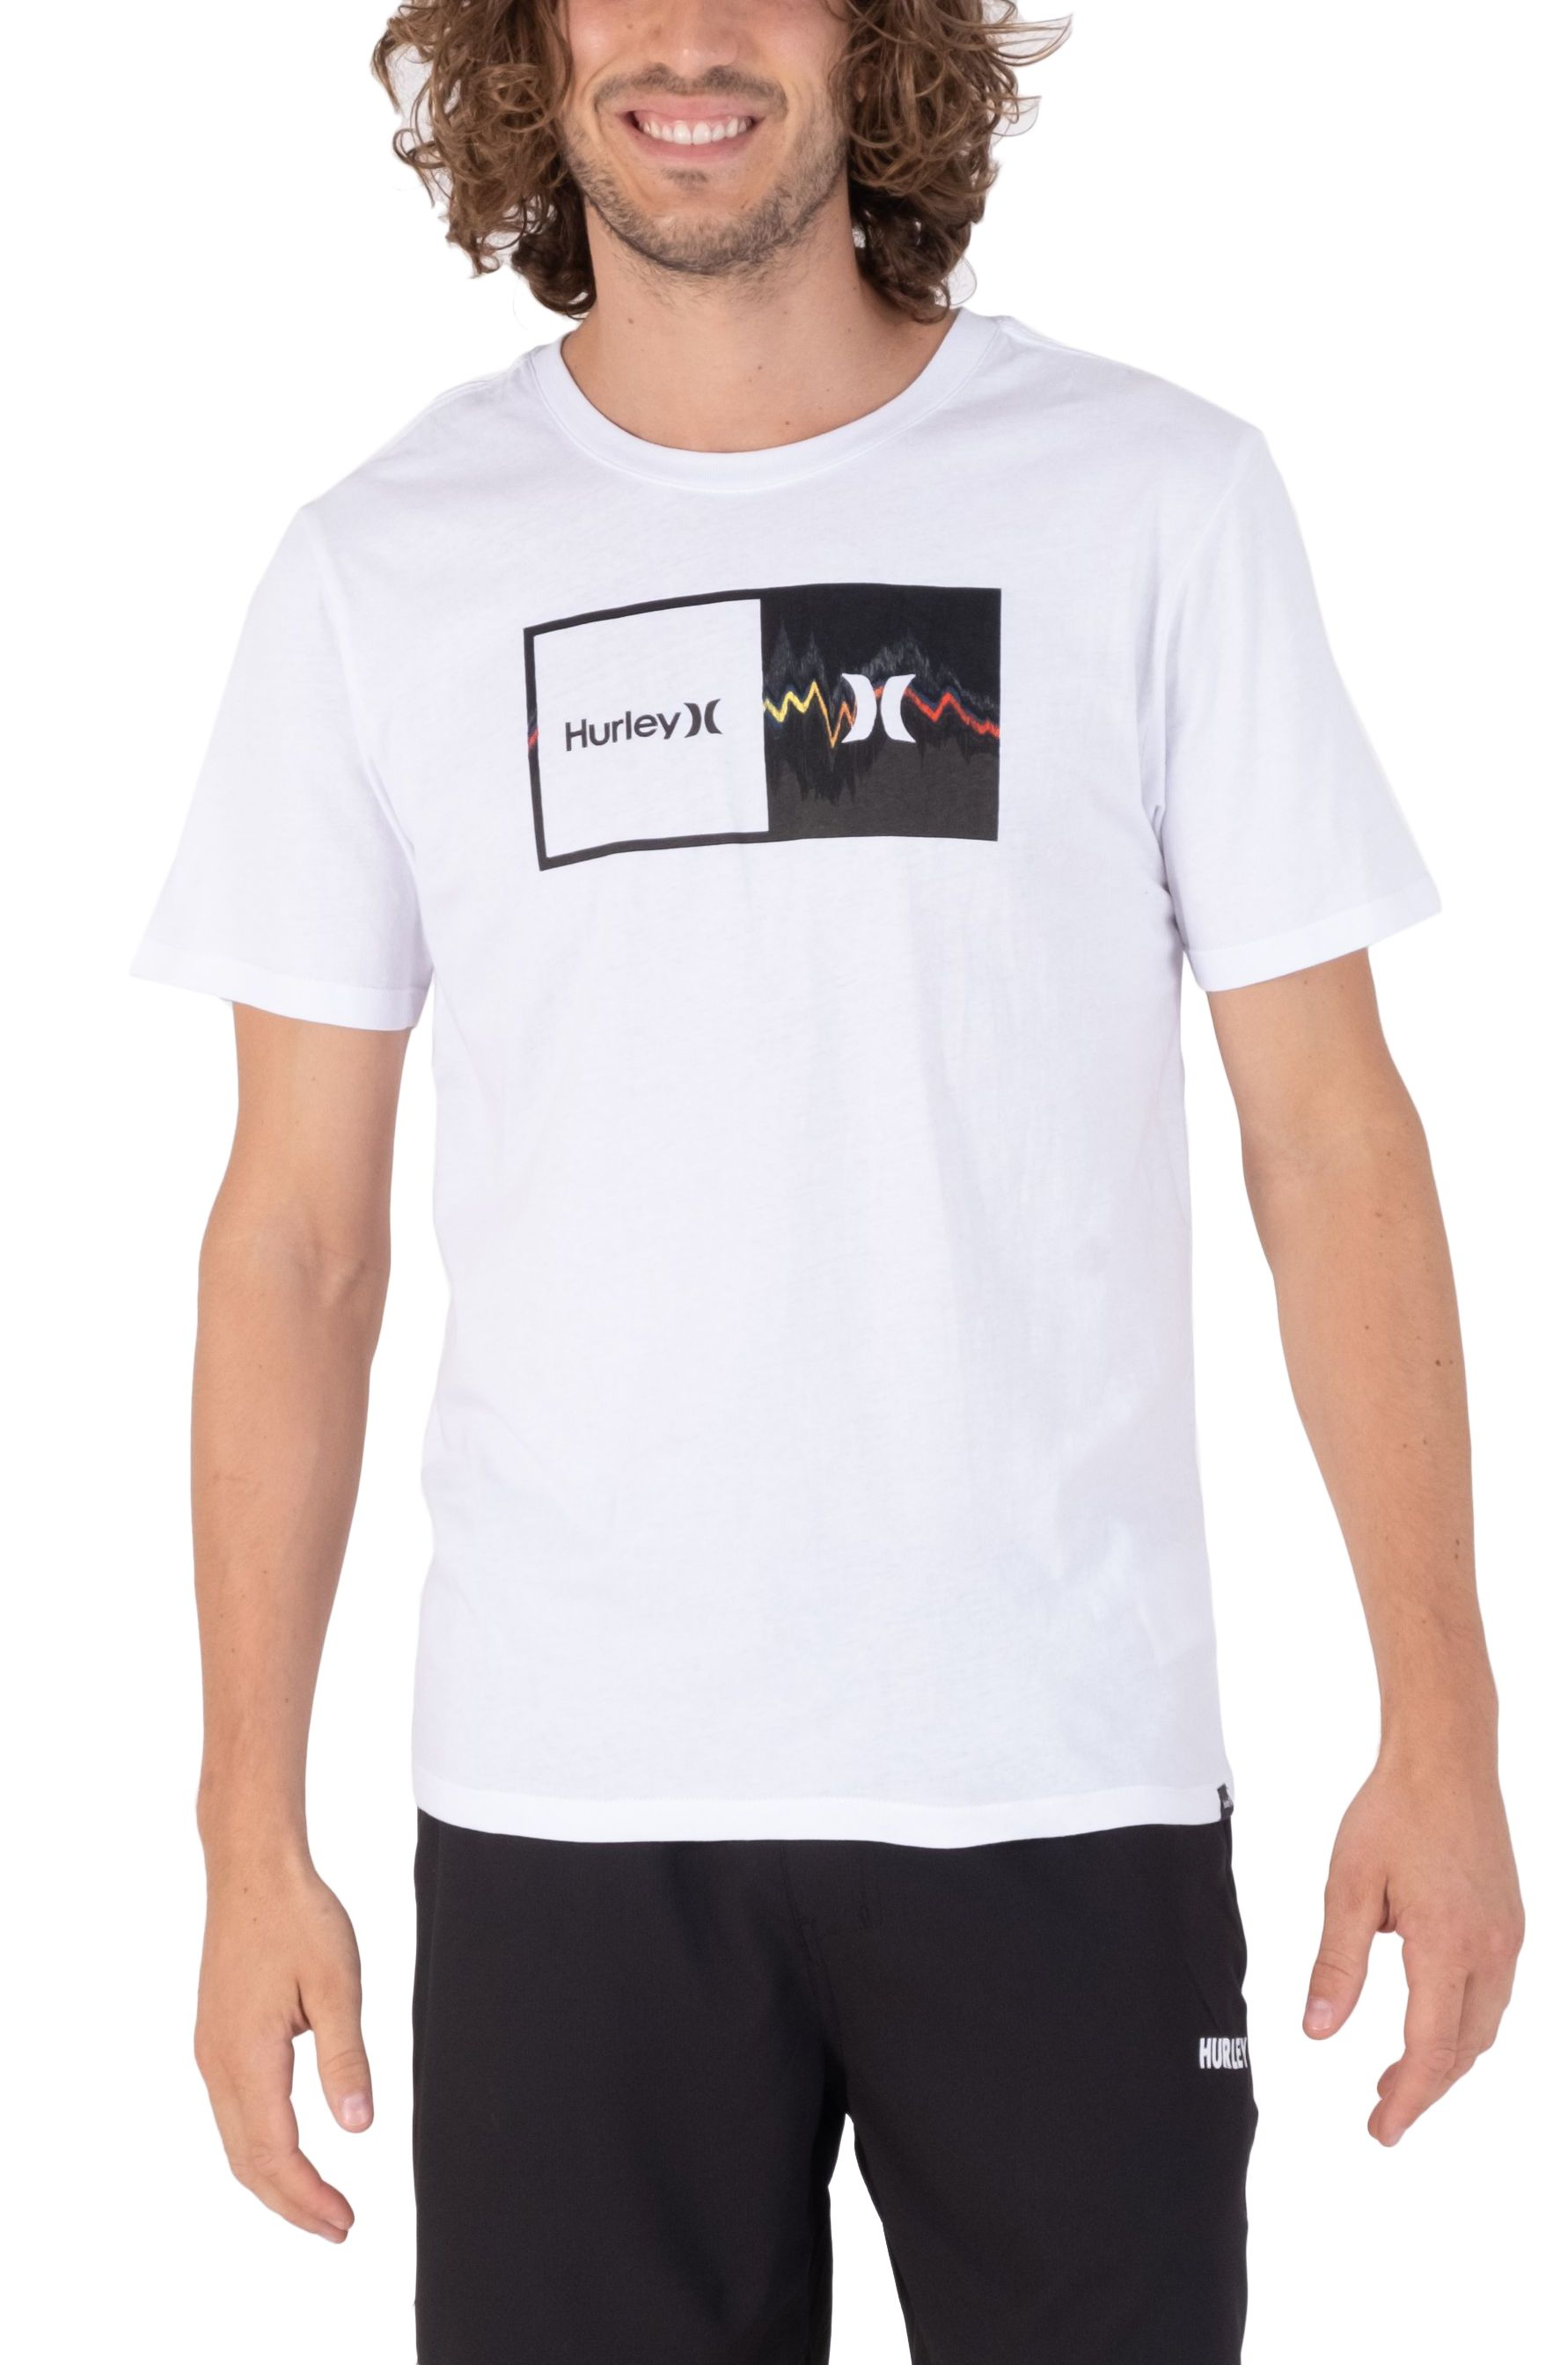 Hurley T-Shirt M EVD WSH DOUBLE UP GLITCH SS White